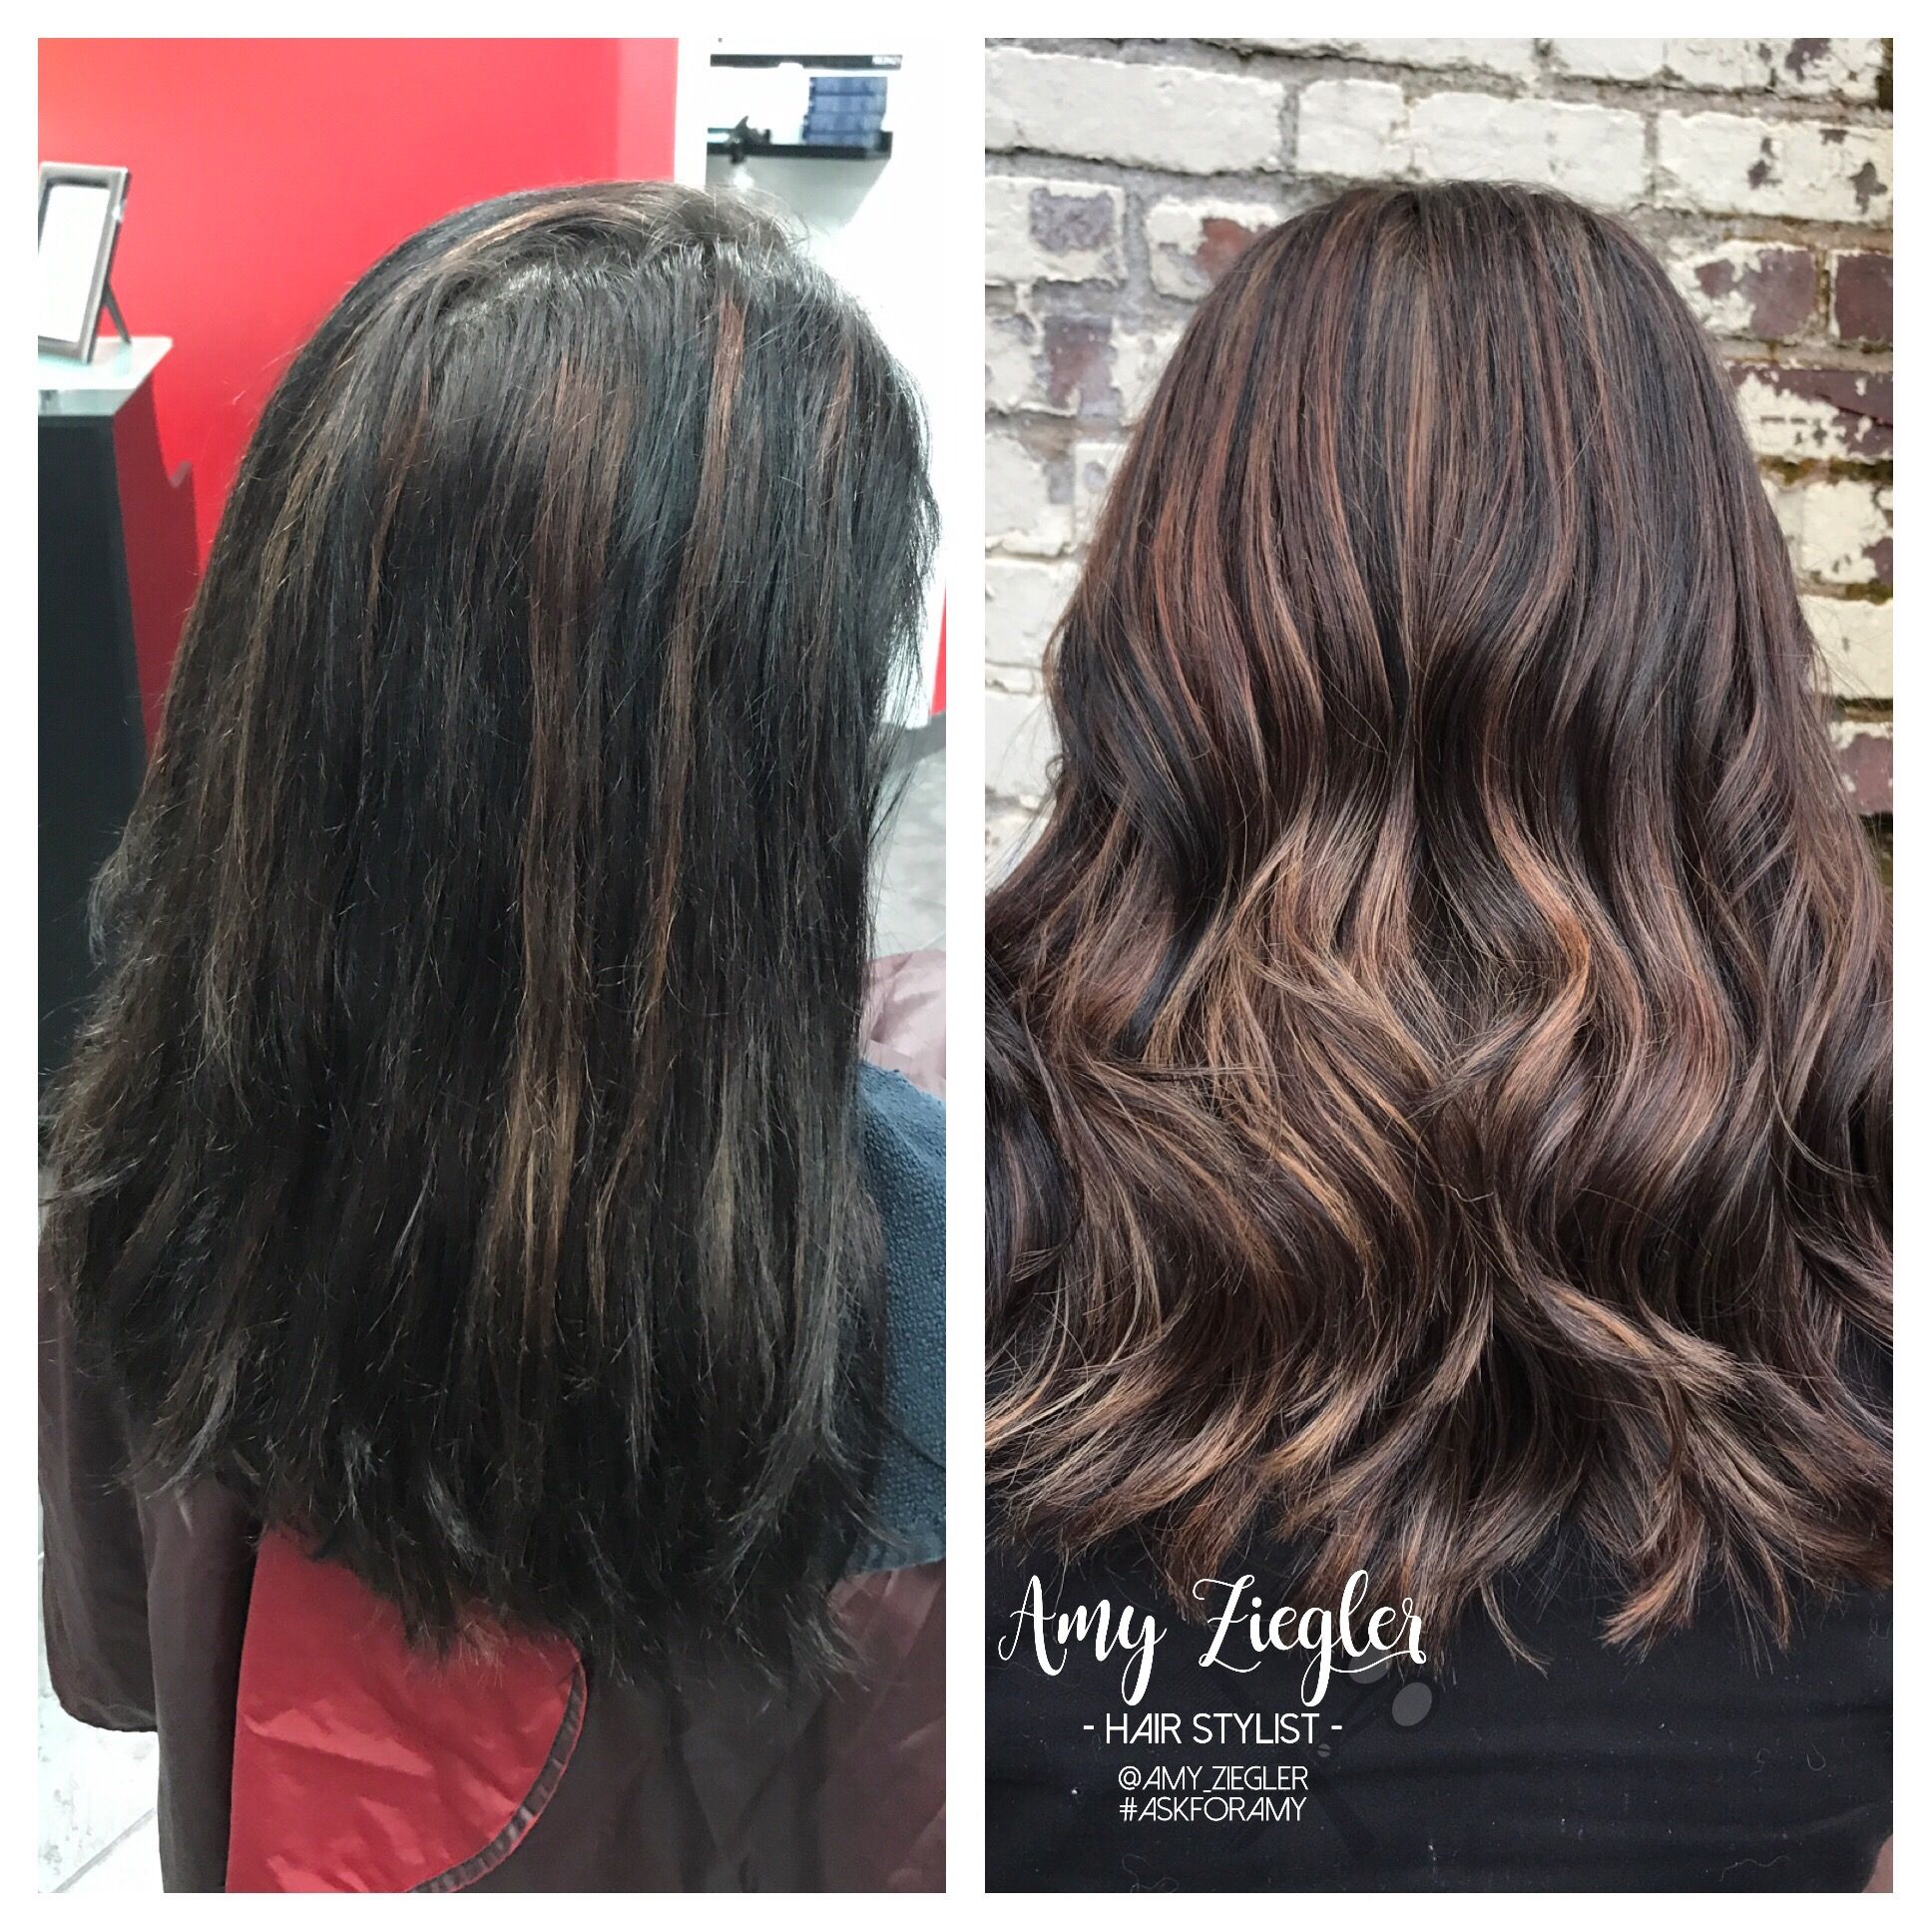 From Black Hair To Full Head Highlight For Lighter Look By